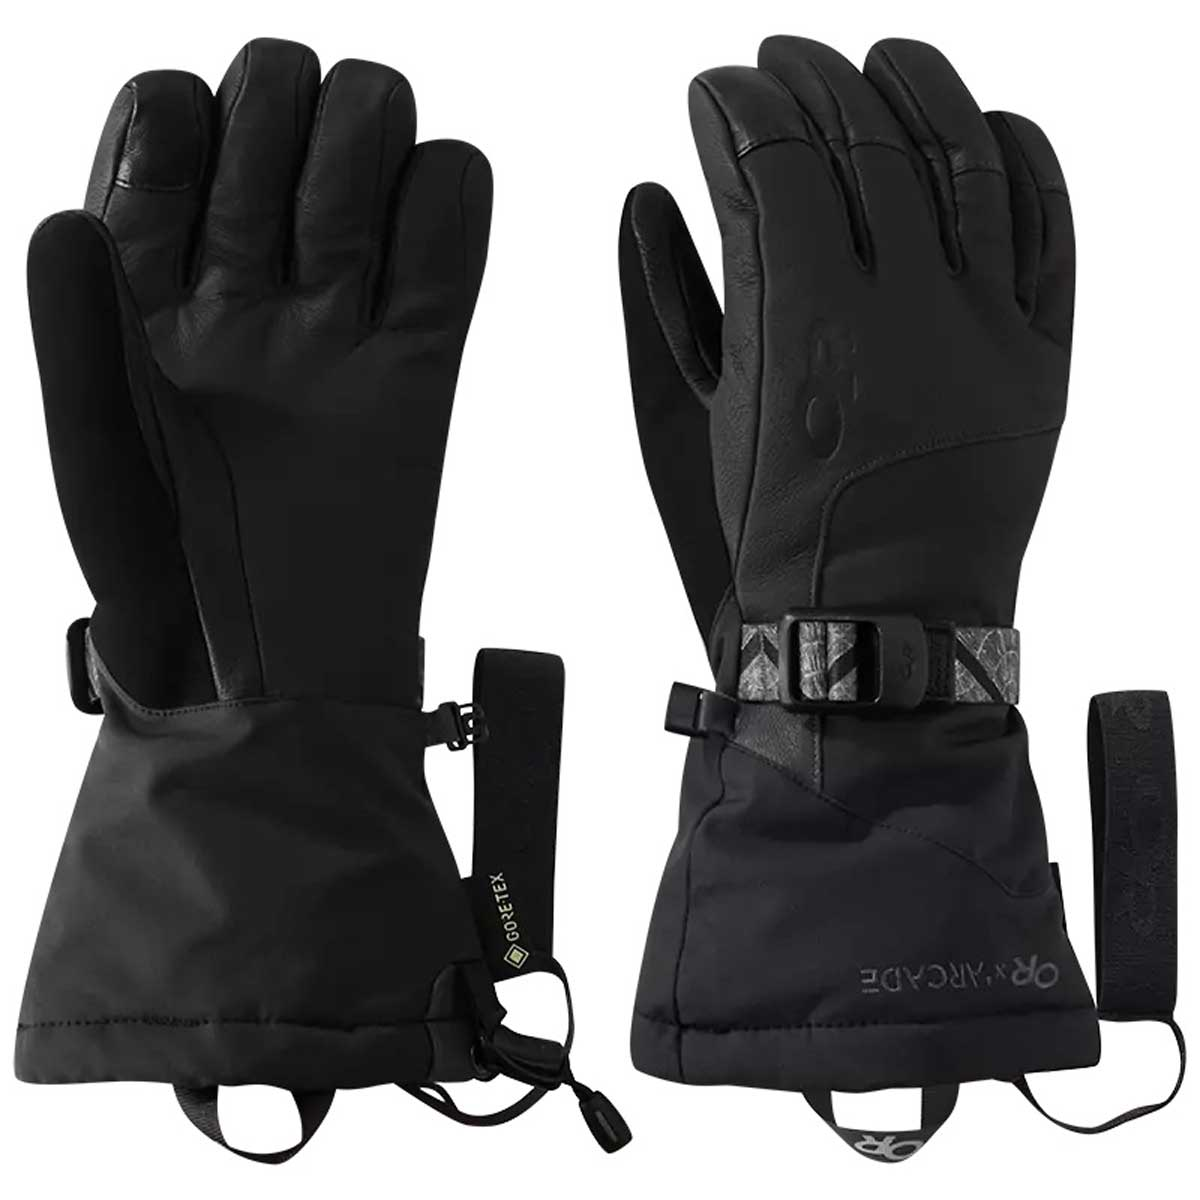 Outdoor Research Women's Carbide Sensor Gloves in Black and Storm